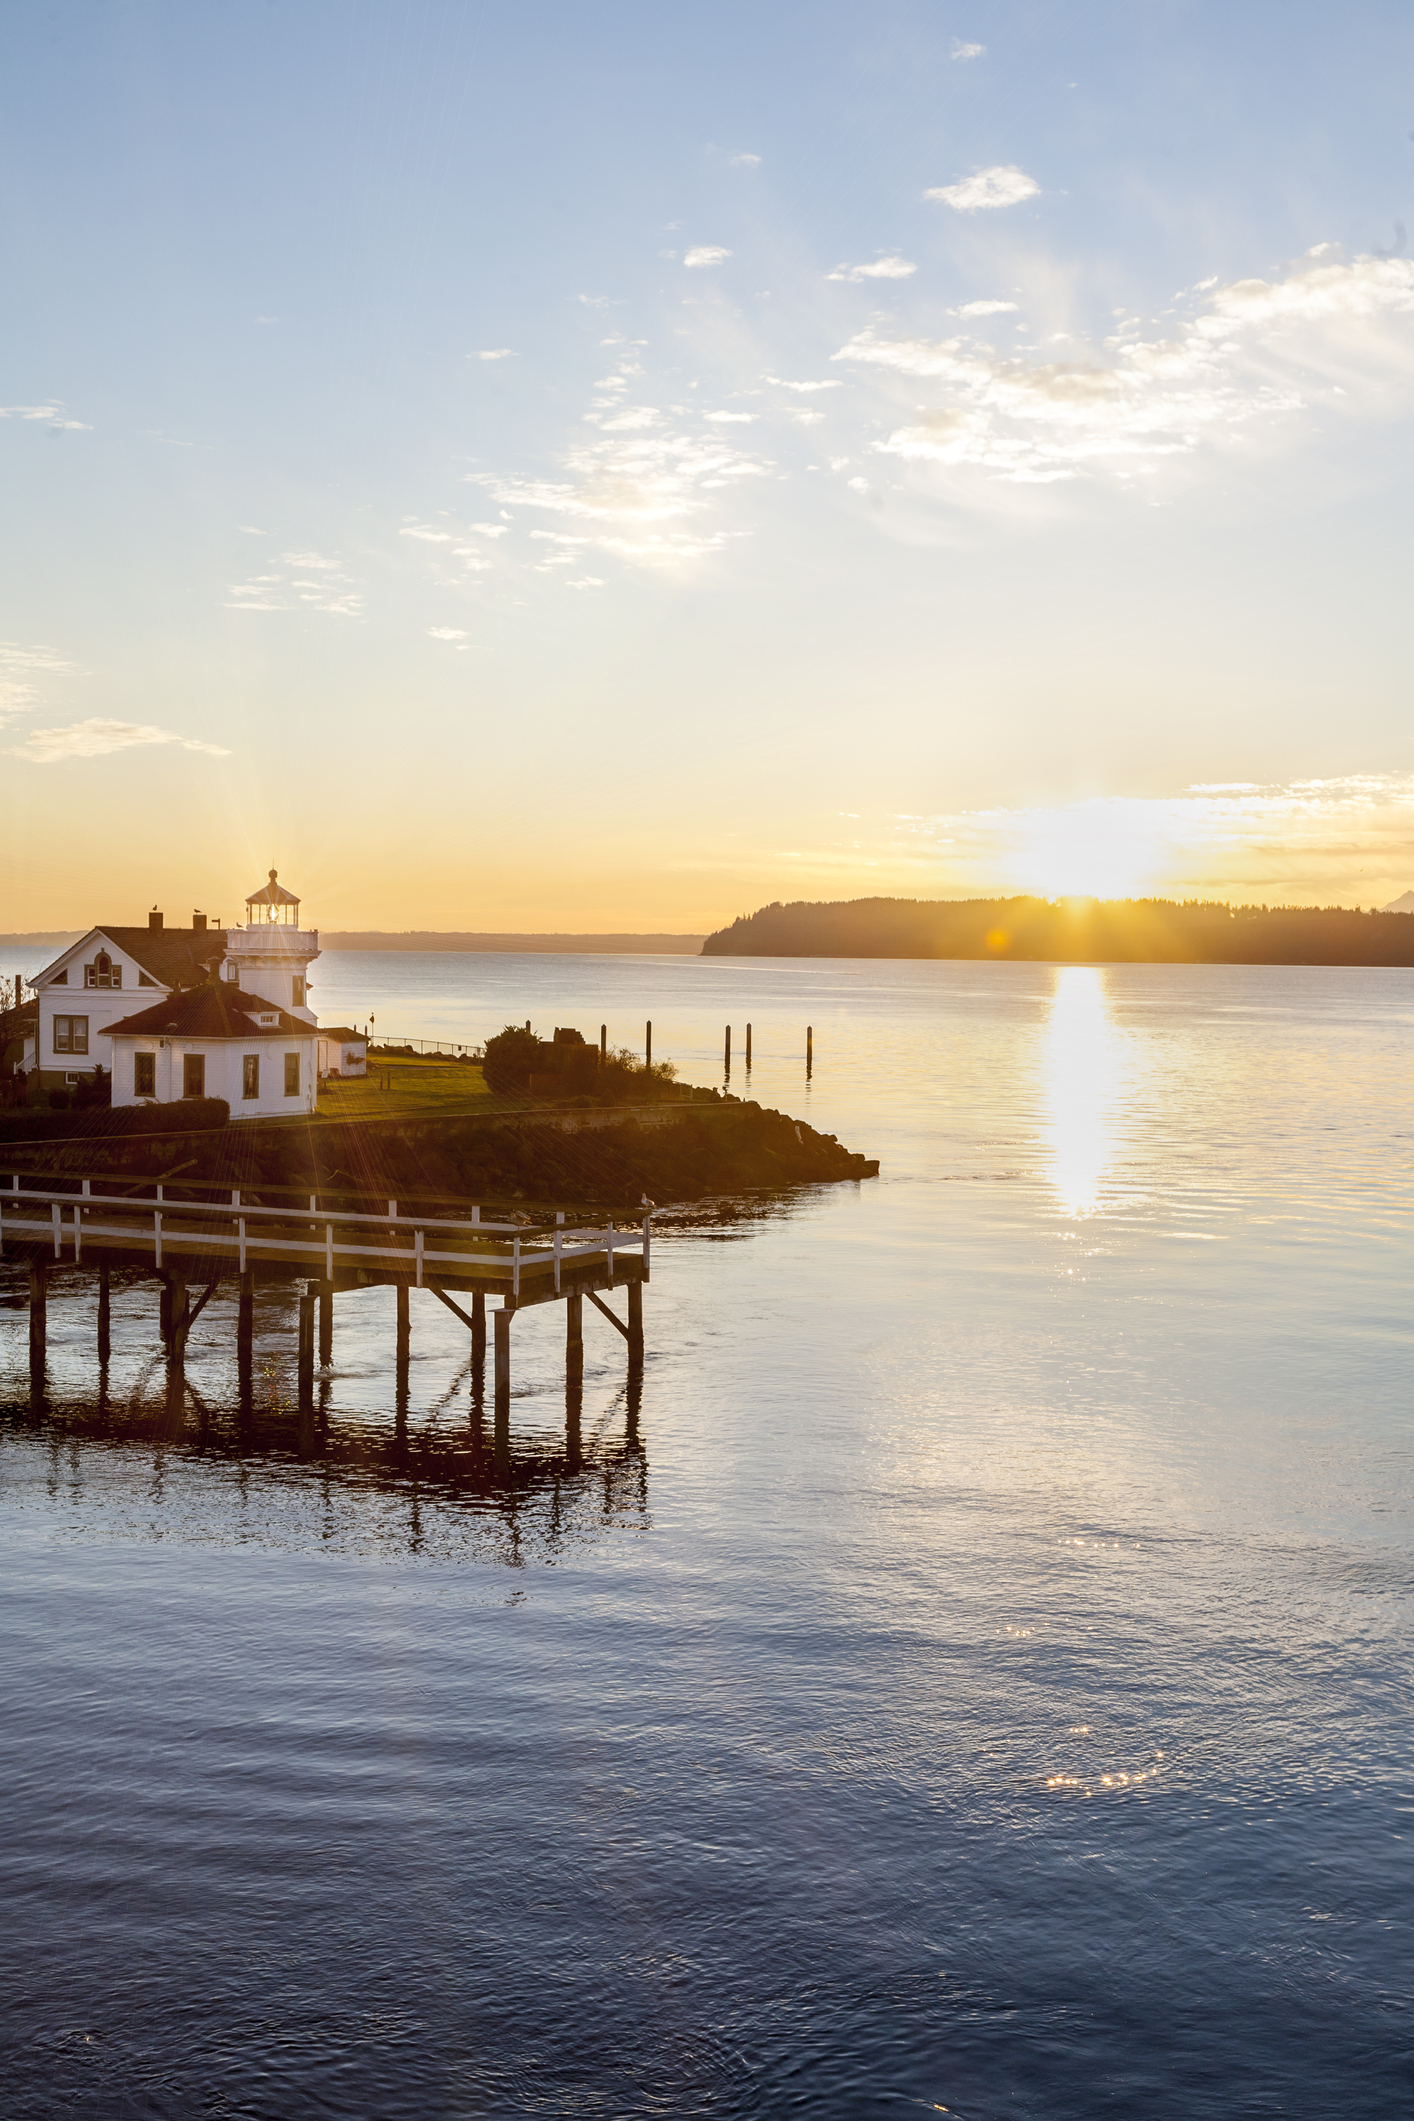 WHIDBEY ISLANDaT A Glance - From beachfront luxury homes, to private forest enclaves, Whidbey Island offers property for every unique way of life.